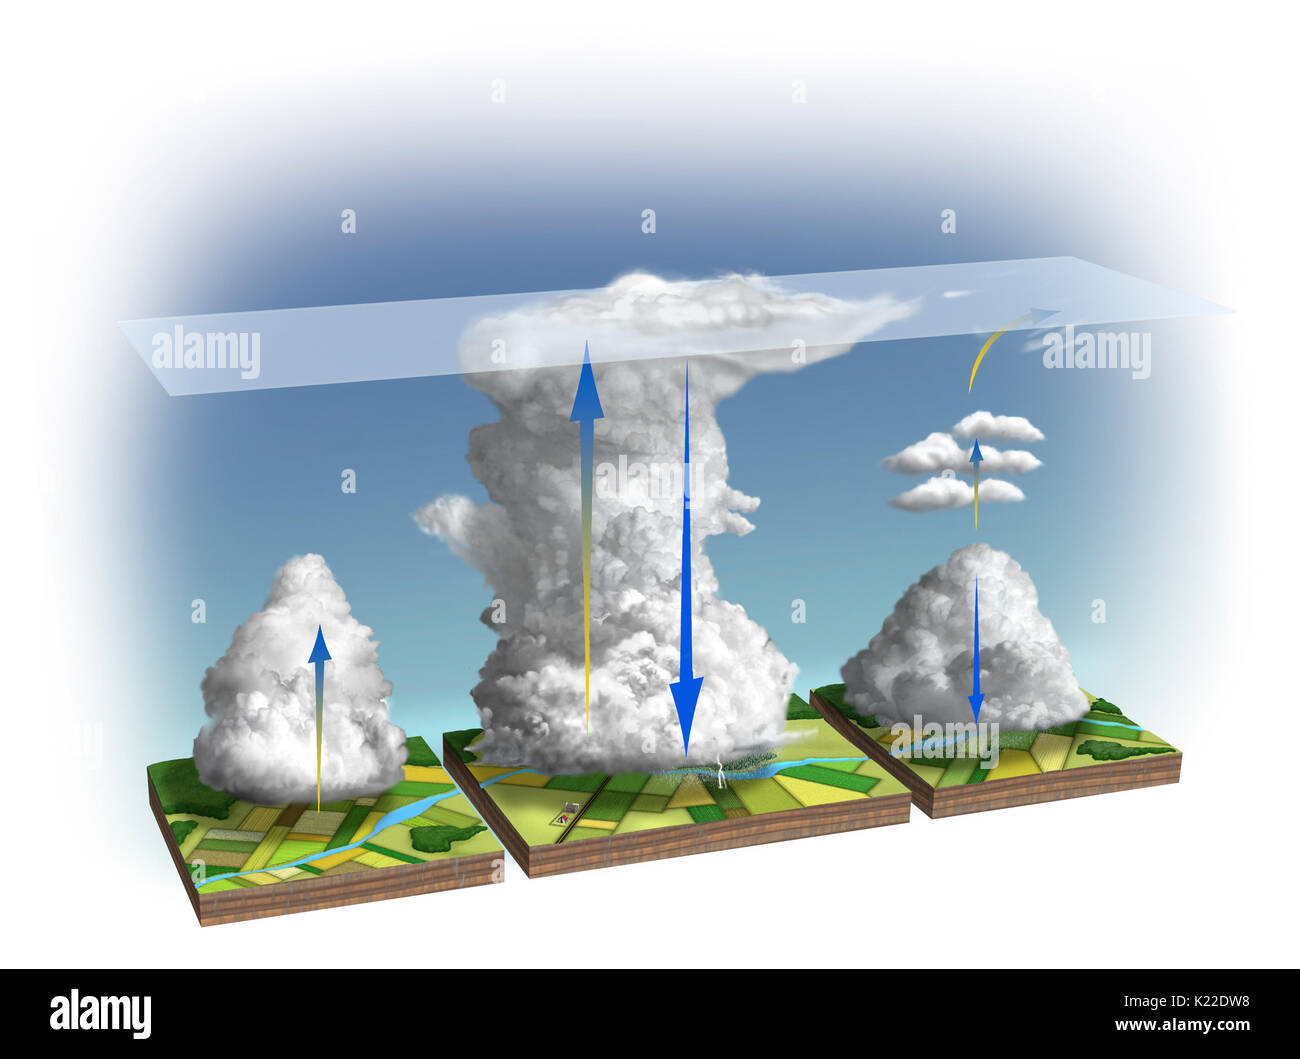 The life cycle a thunderstorm cell has three stages. In development stage,updraft a humid air mass forms a cumulus cloud. If air unstable,warm currents continue to rise,cloud grows to cumulonimbus stage. When it reaches tropopause,cloud stops developing in height becomes loaded with ice crystals that begin precipitation process. thunderstorm then enters its maturity stage: cold,heavy air from top cloud suddenly falls in form strong currents accompanied by lightning heavy showers. - Stock Image